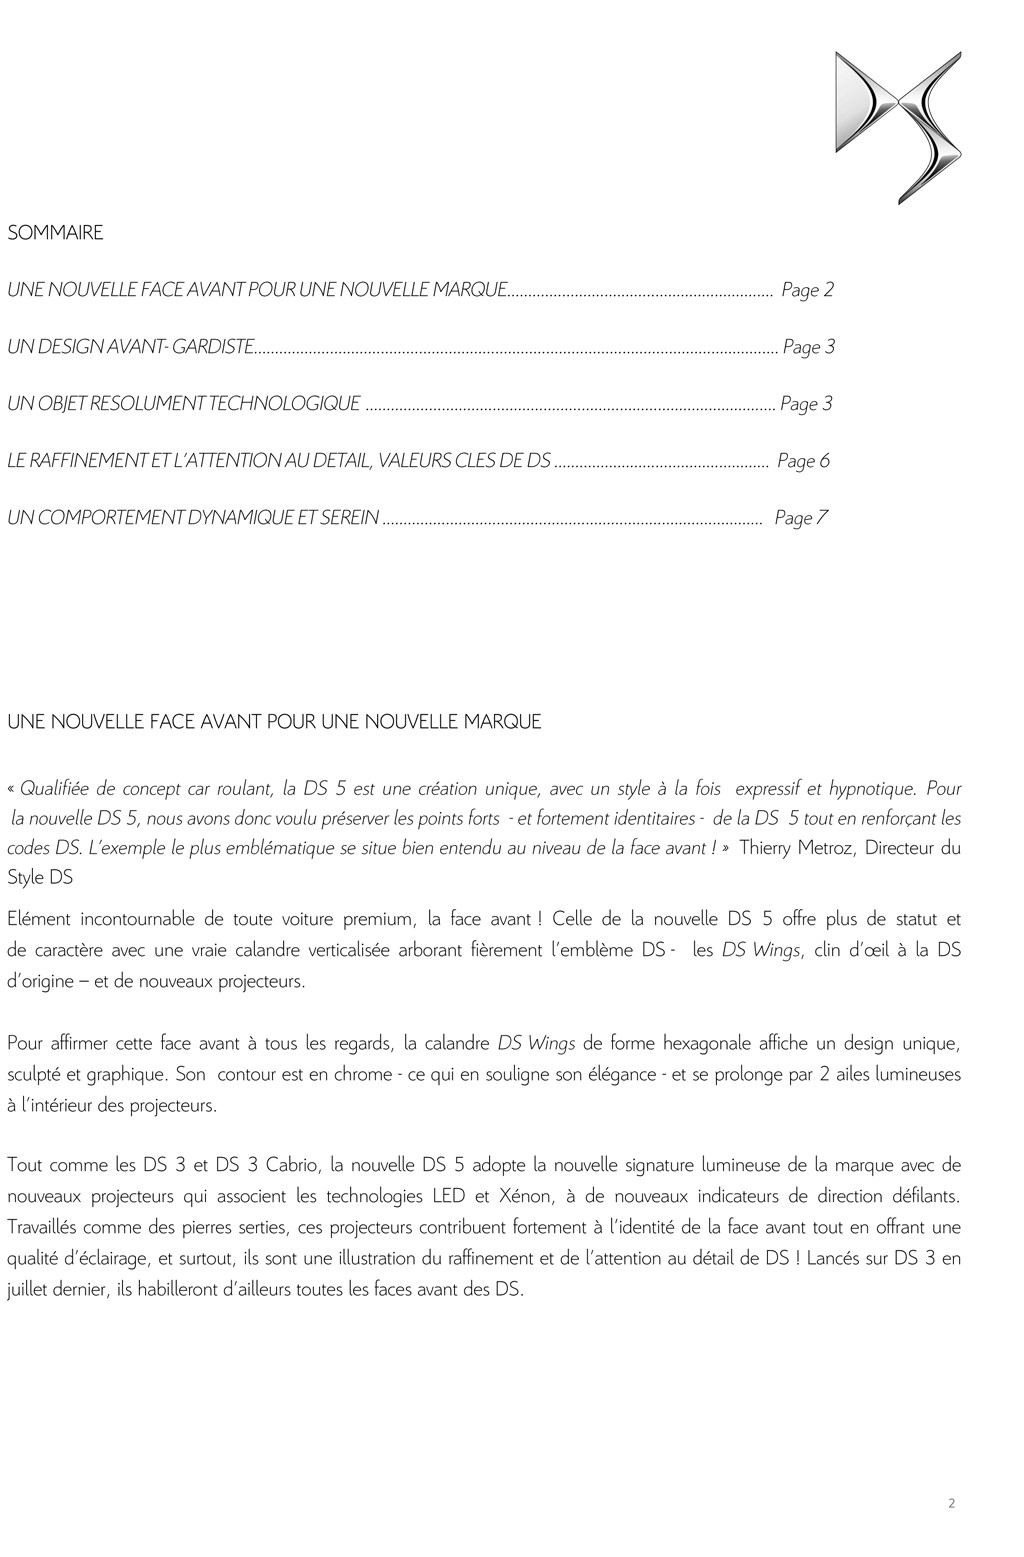 [SUJET OFFICIEL] DS 5 restylée (photos officielles p.16) - Page 10 Dp_ds_11